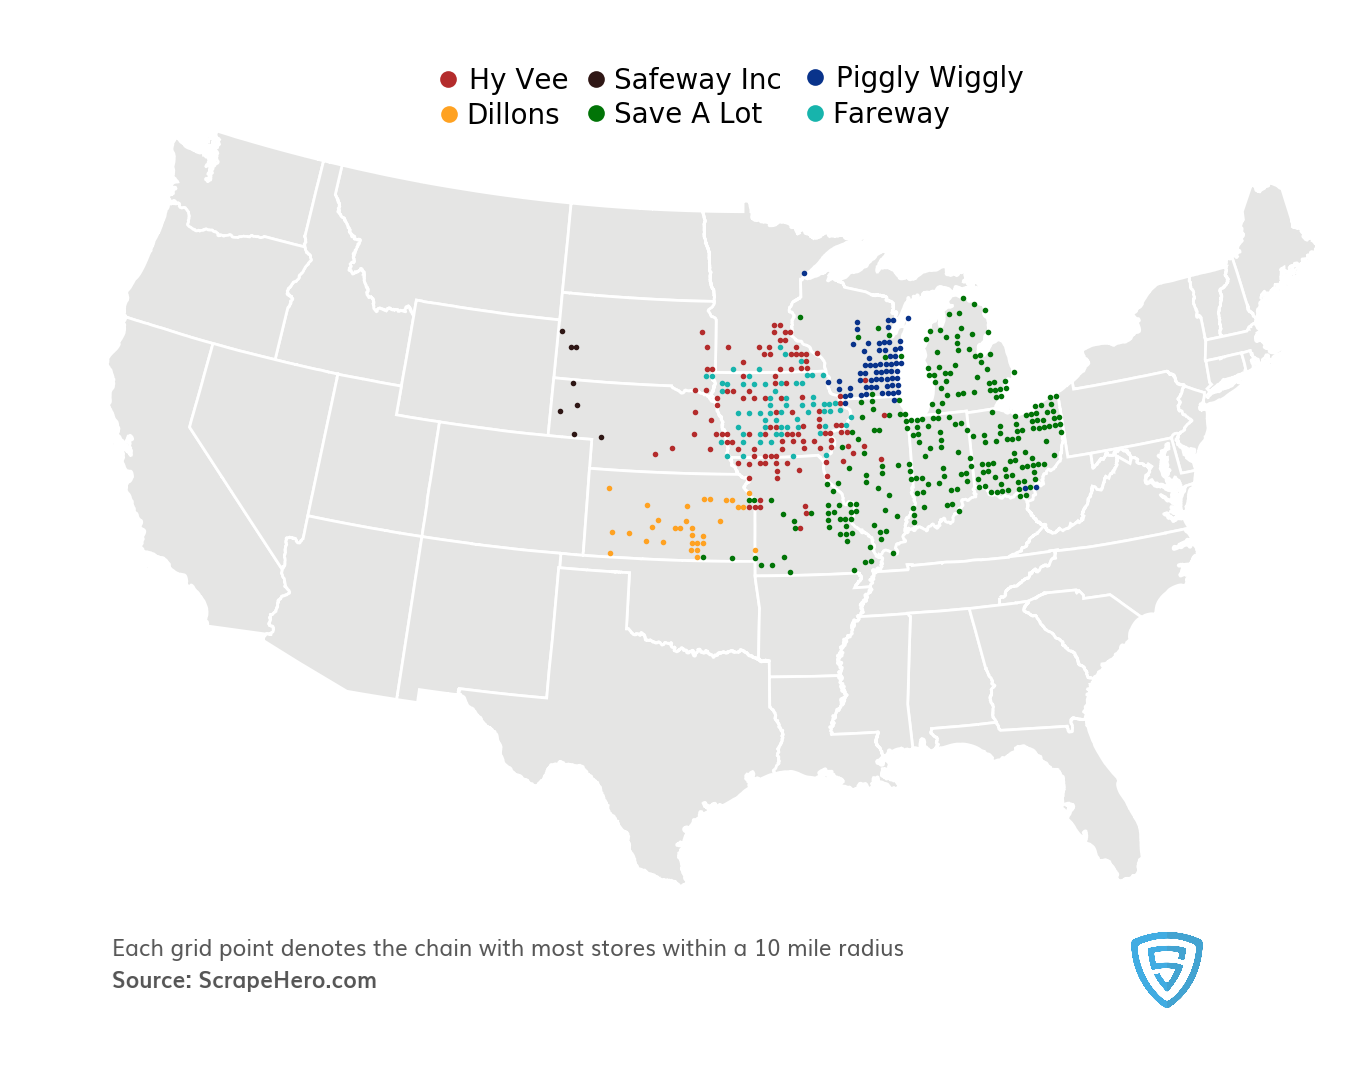 midwest-grocery-chains-usa-map